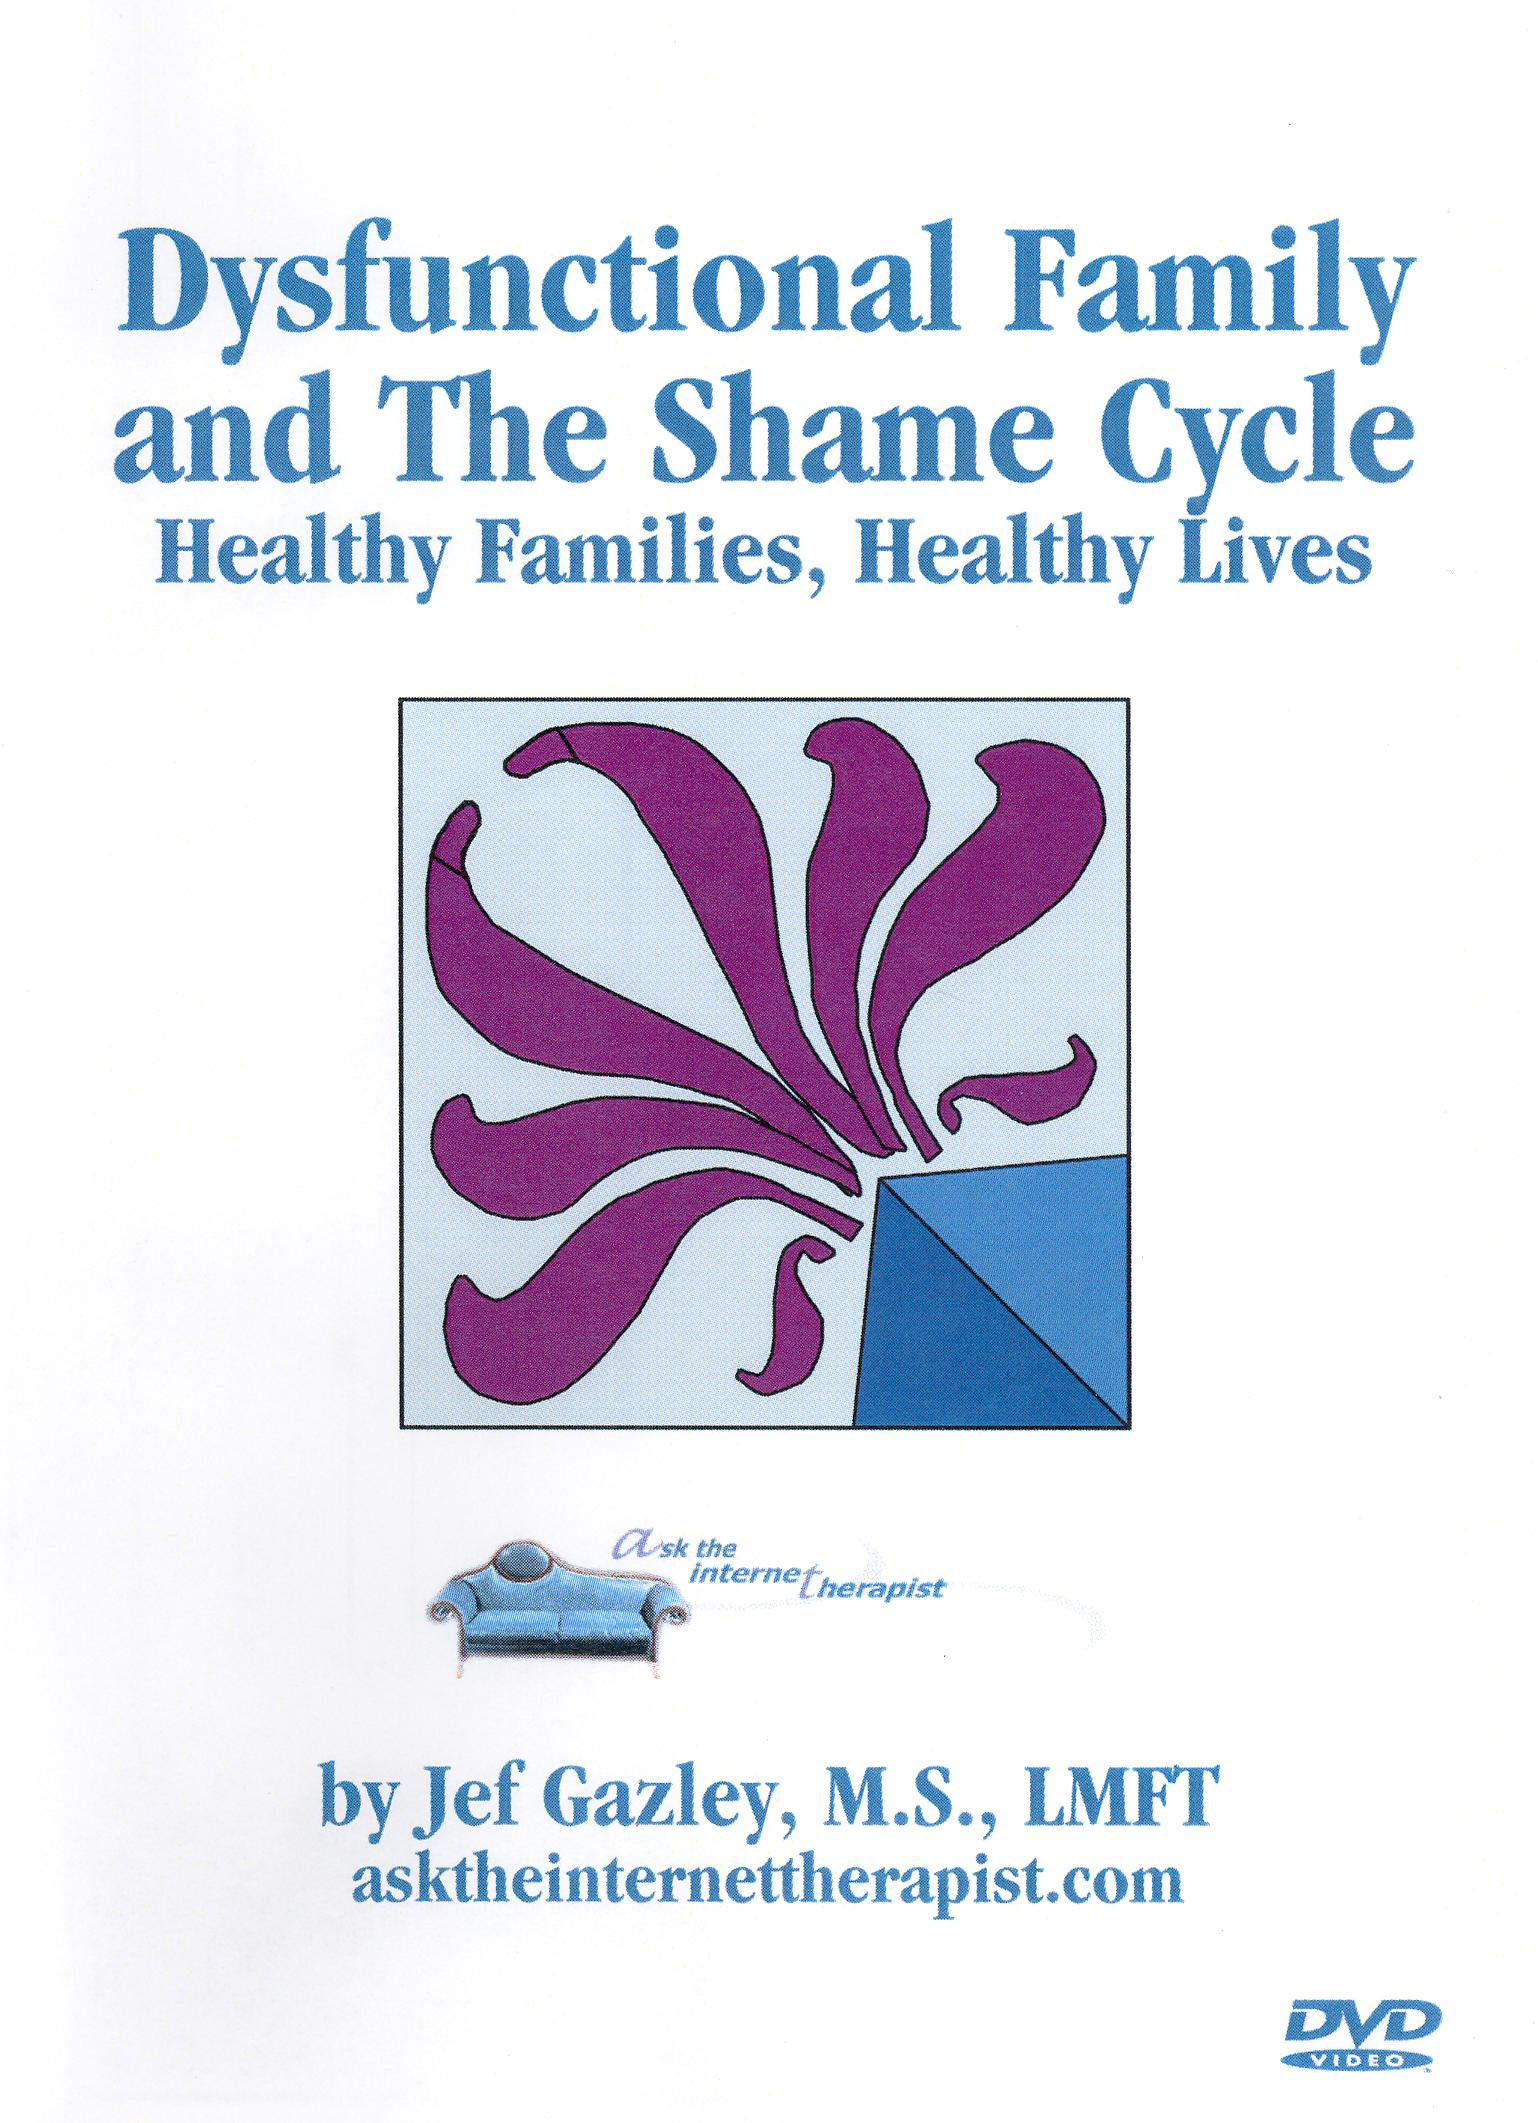 Dysfunctional Families and Shame Cycle: Healthy Families, Healthy Lives